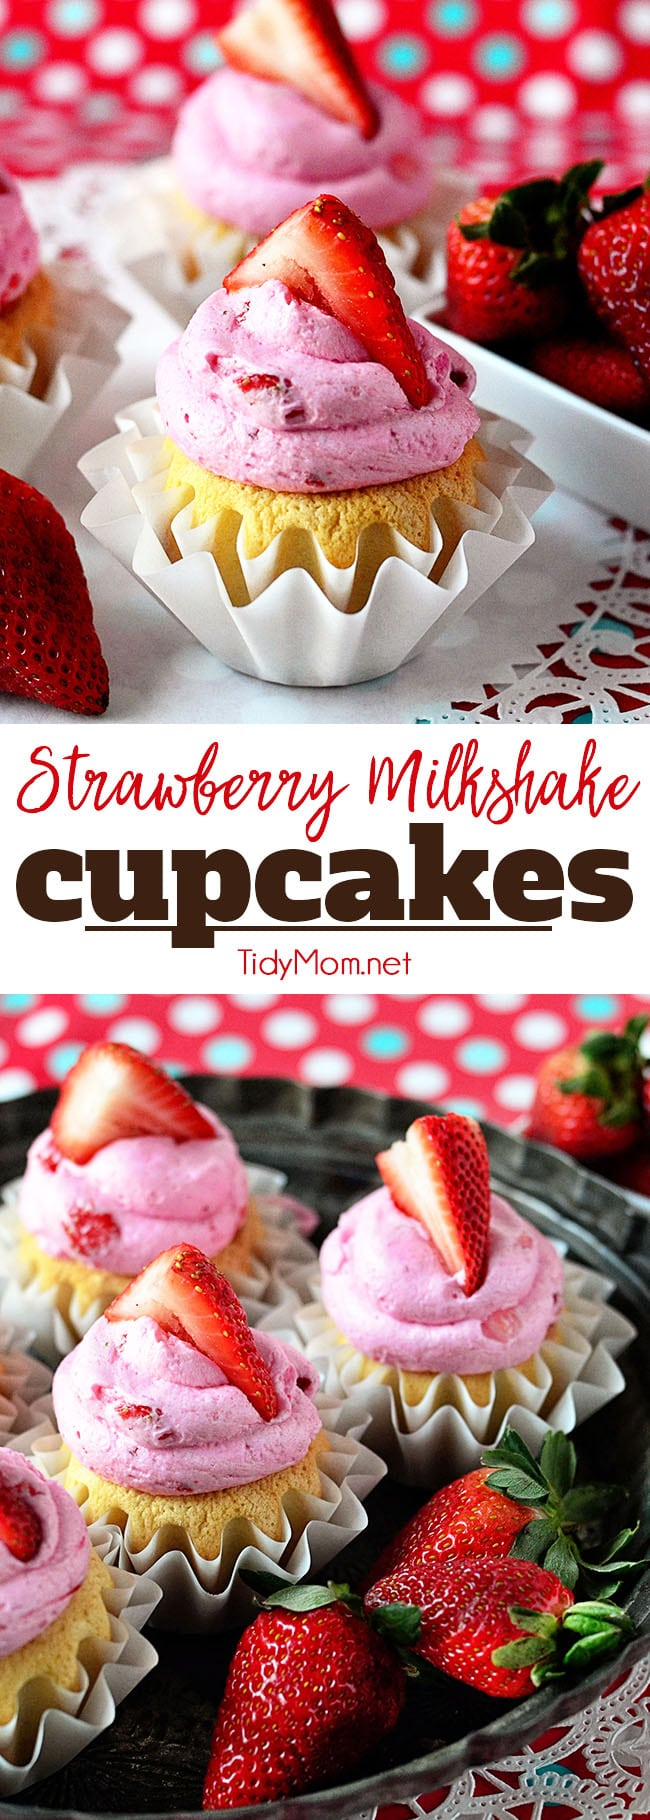 Fresh strawberries makes this Strawberry Buttercream the perfect complement to the french vanilla cake beneath in these Strawberry Milkshake Cupcakes. Get the full easy cupcake recipe at TidyMom.net #cupcakes #strawberry #strawberries #buttercream